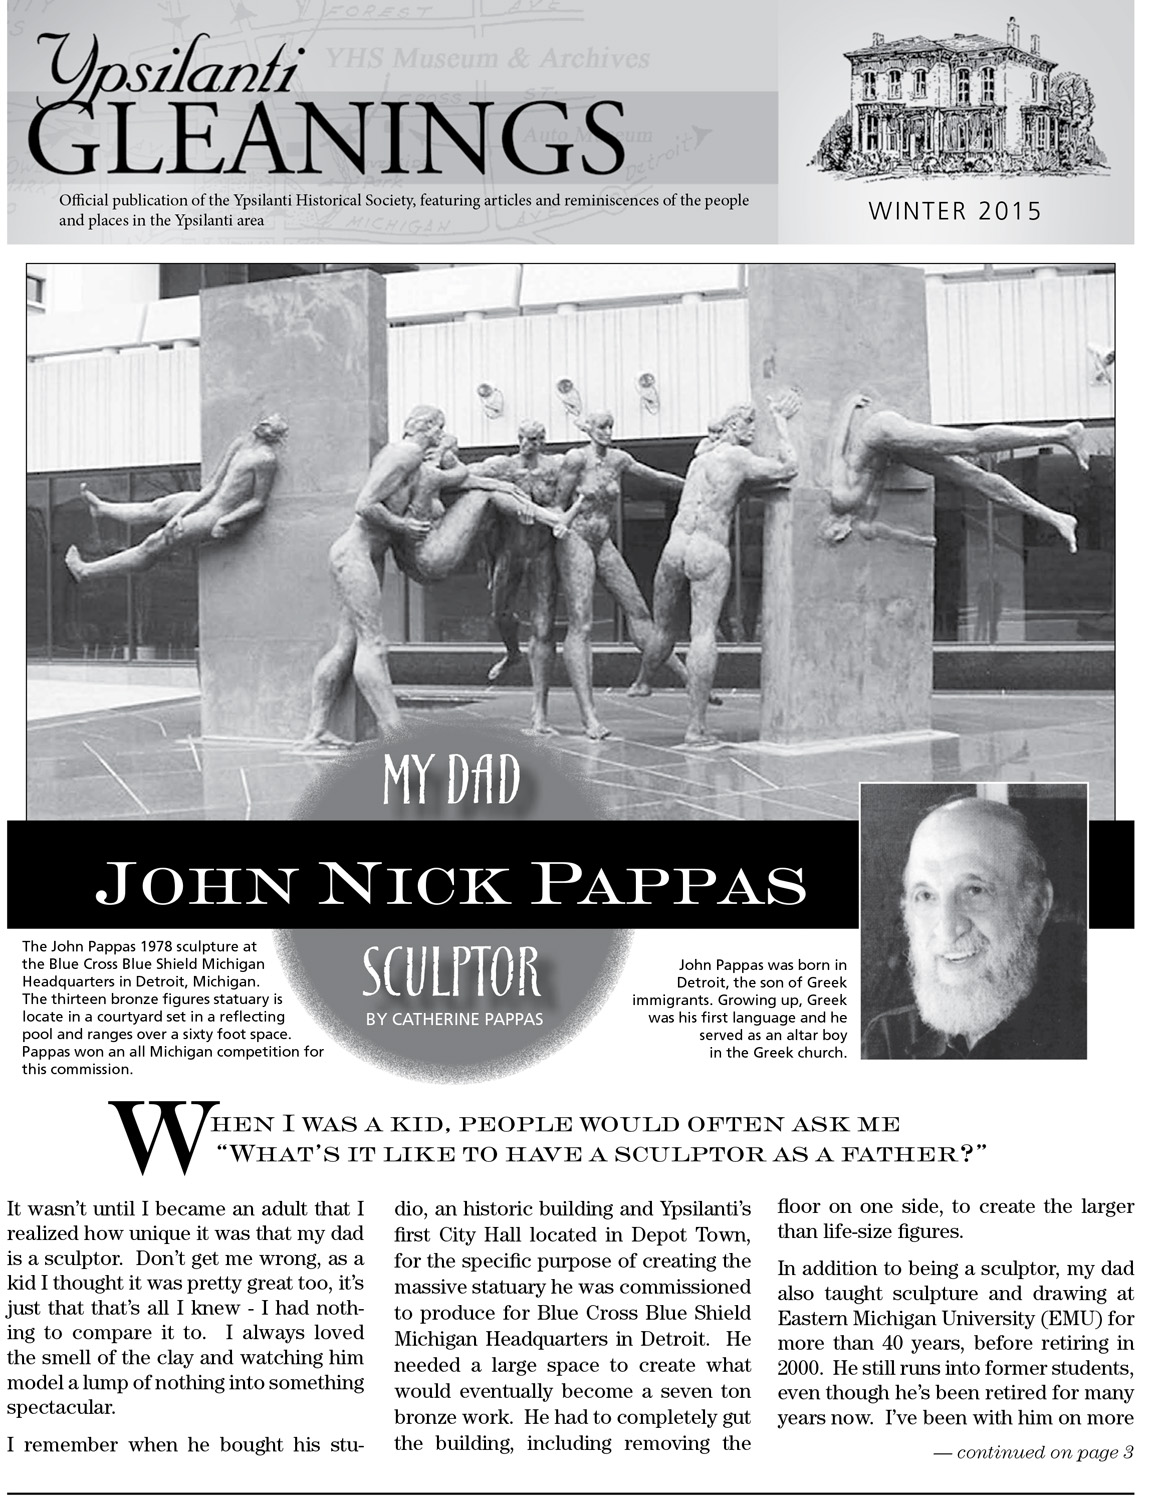 My Dad, John Nick Pappas, Sculptor  image